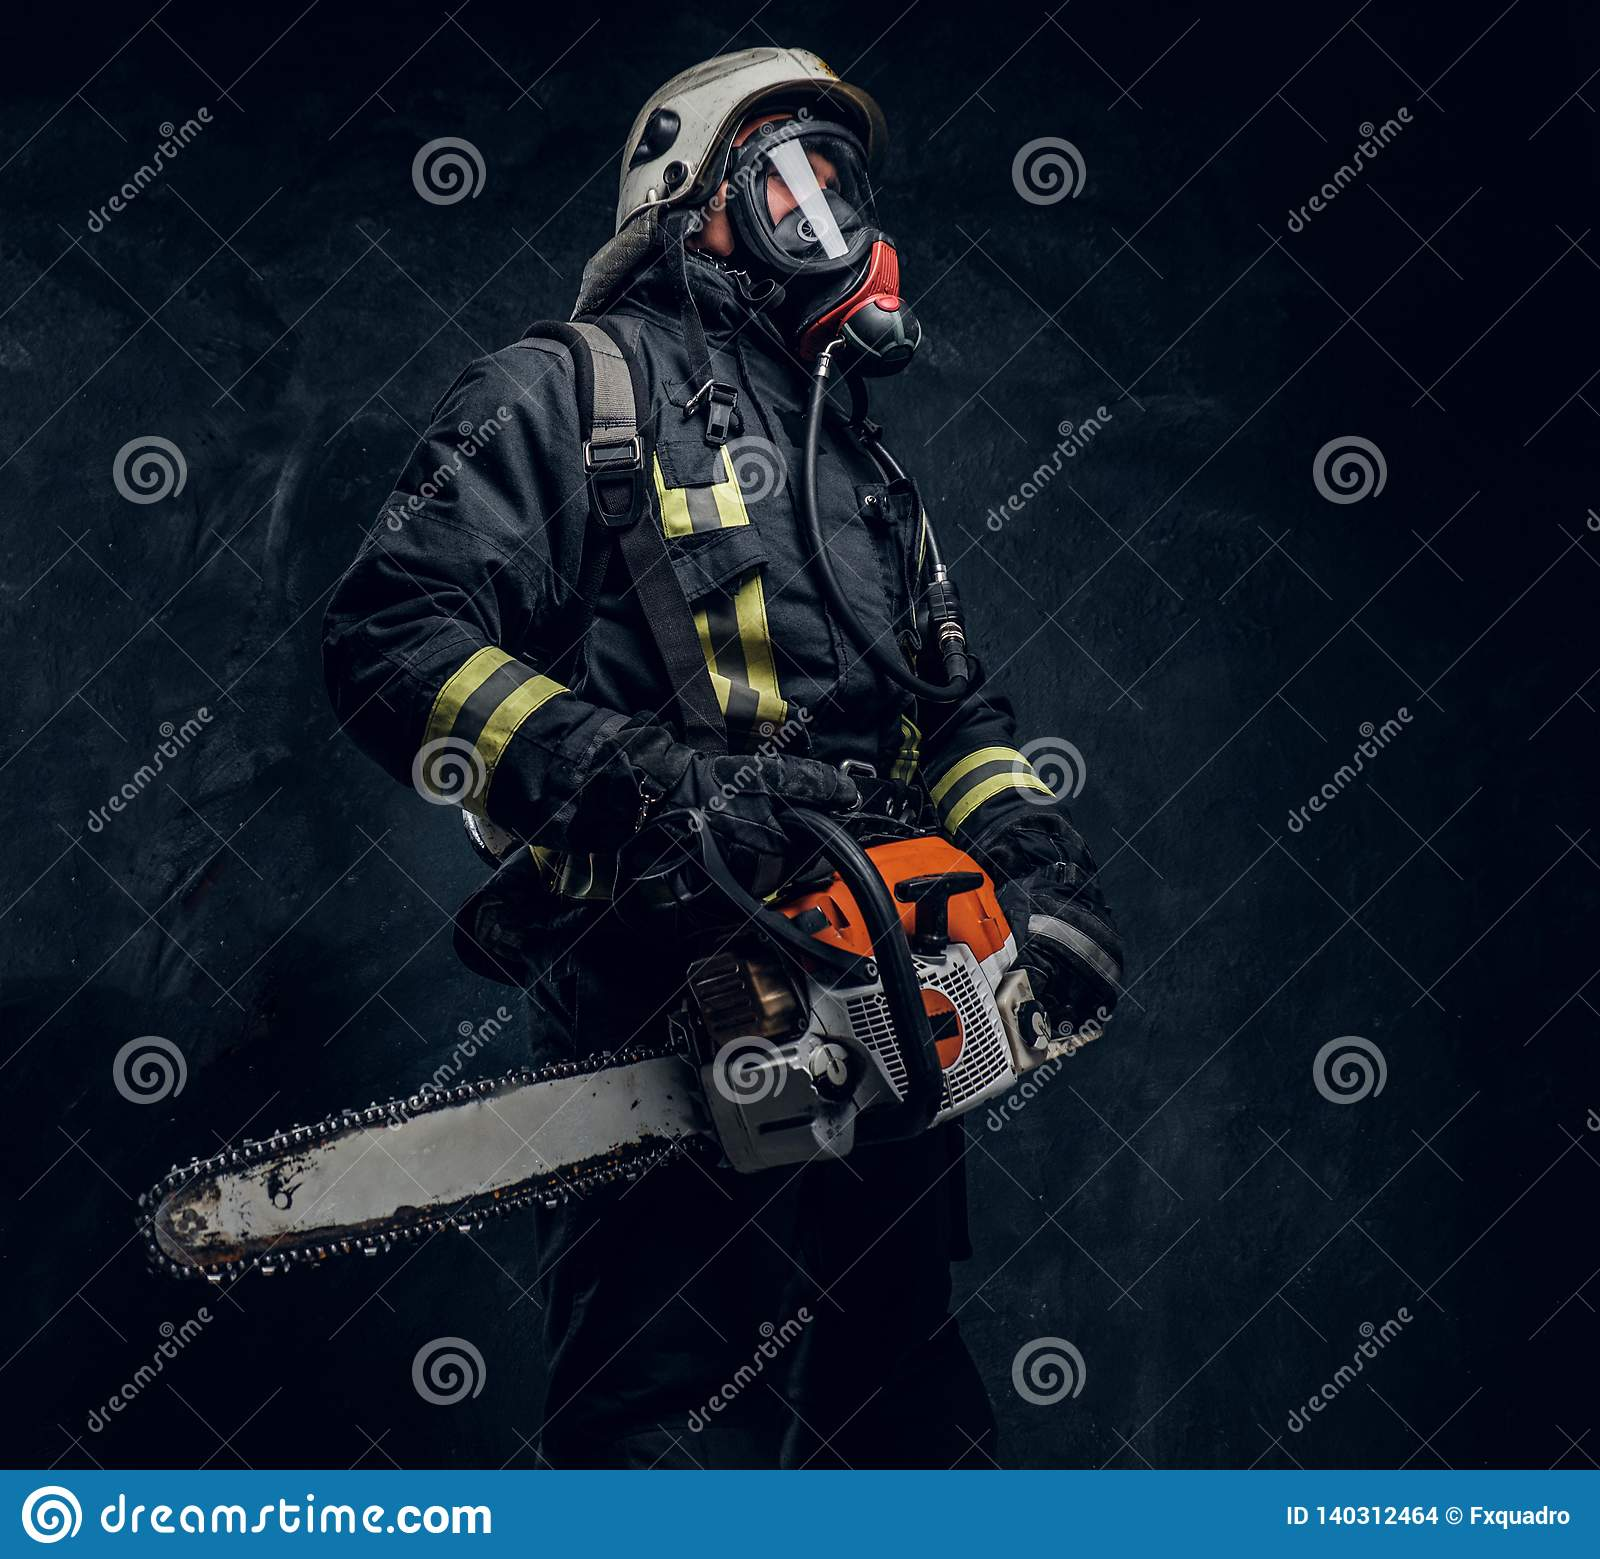 Portrait of a firefighter in safety helmet and oxygen mask holding a chainsaw. Studio photo against a dark textured wall